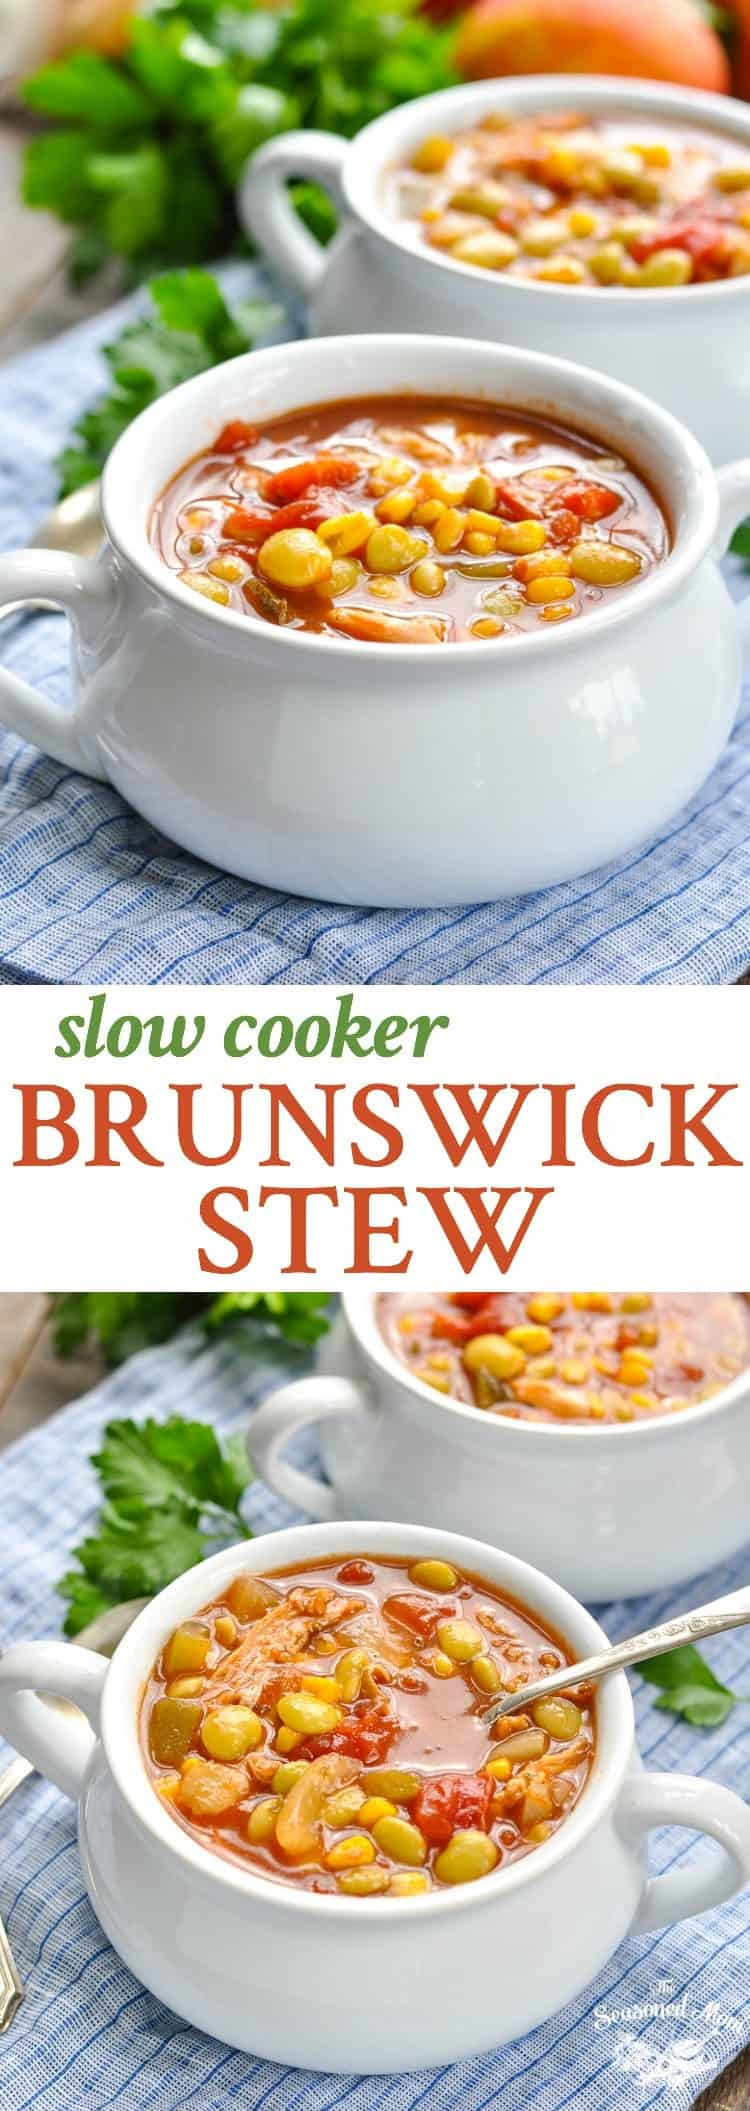 Slow Cooker Brunswick Stew  Slow Cooker Brunswick Stew The Seasoned Mom